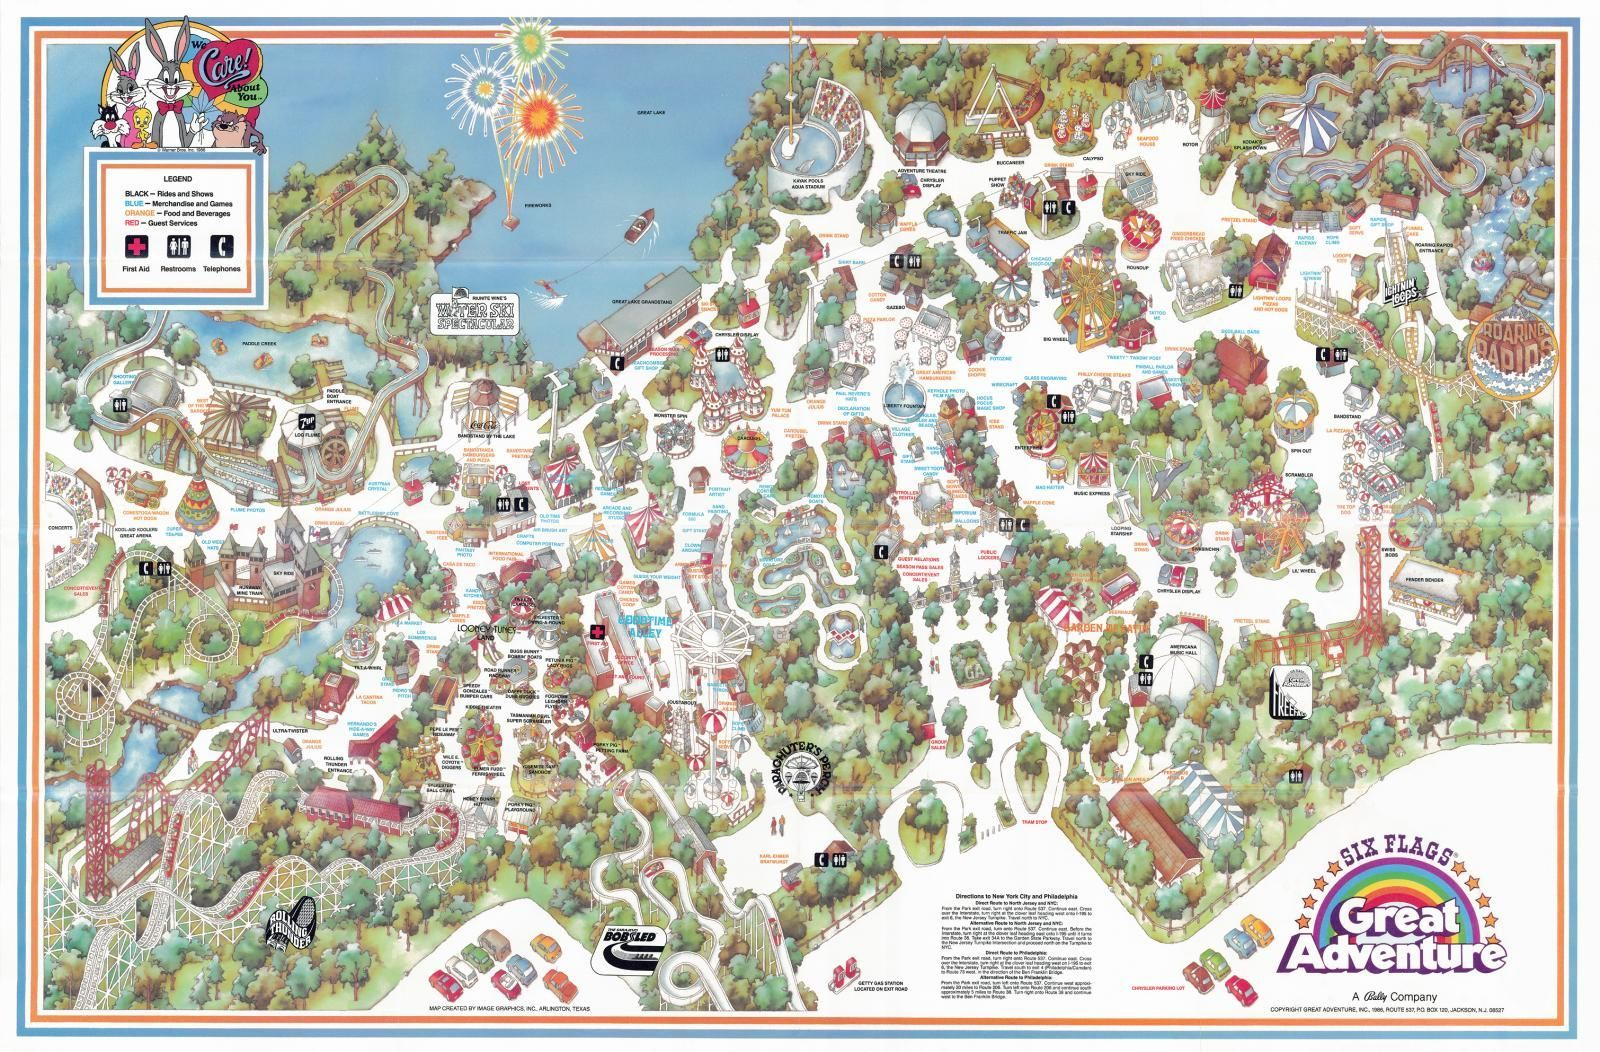 Six Flags Great Adventure 1986 Poster Map It Has The Ultra Twister And The Bobsleds Six Flags Great Adventure Greatest Adventure Adventure Map